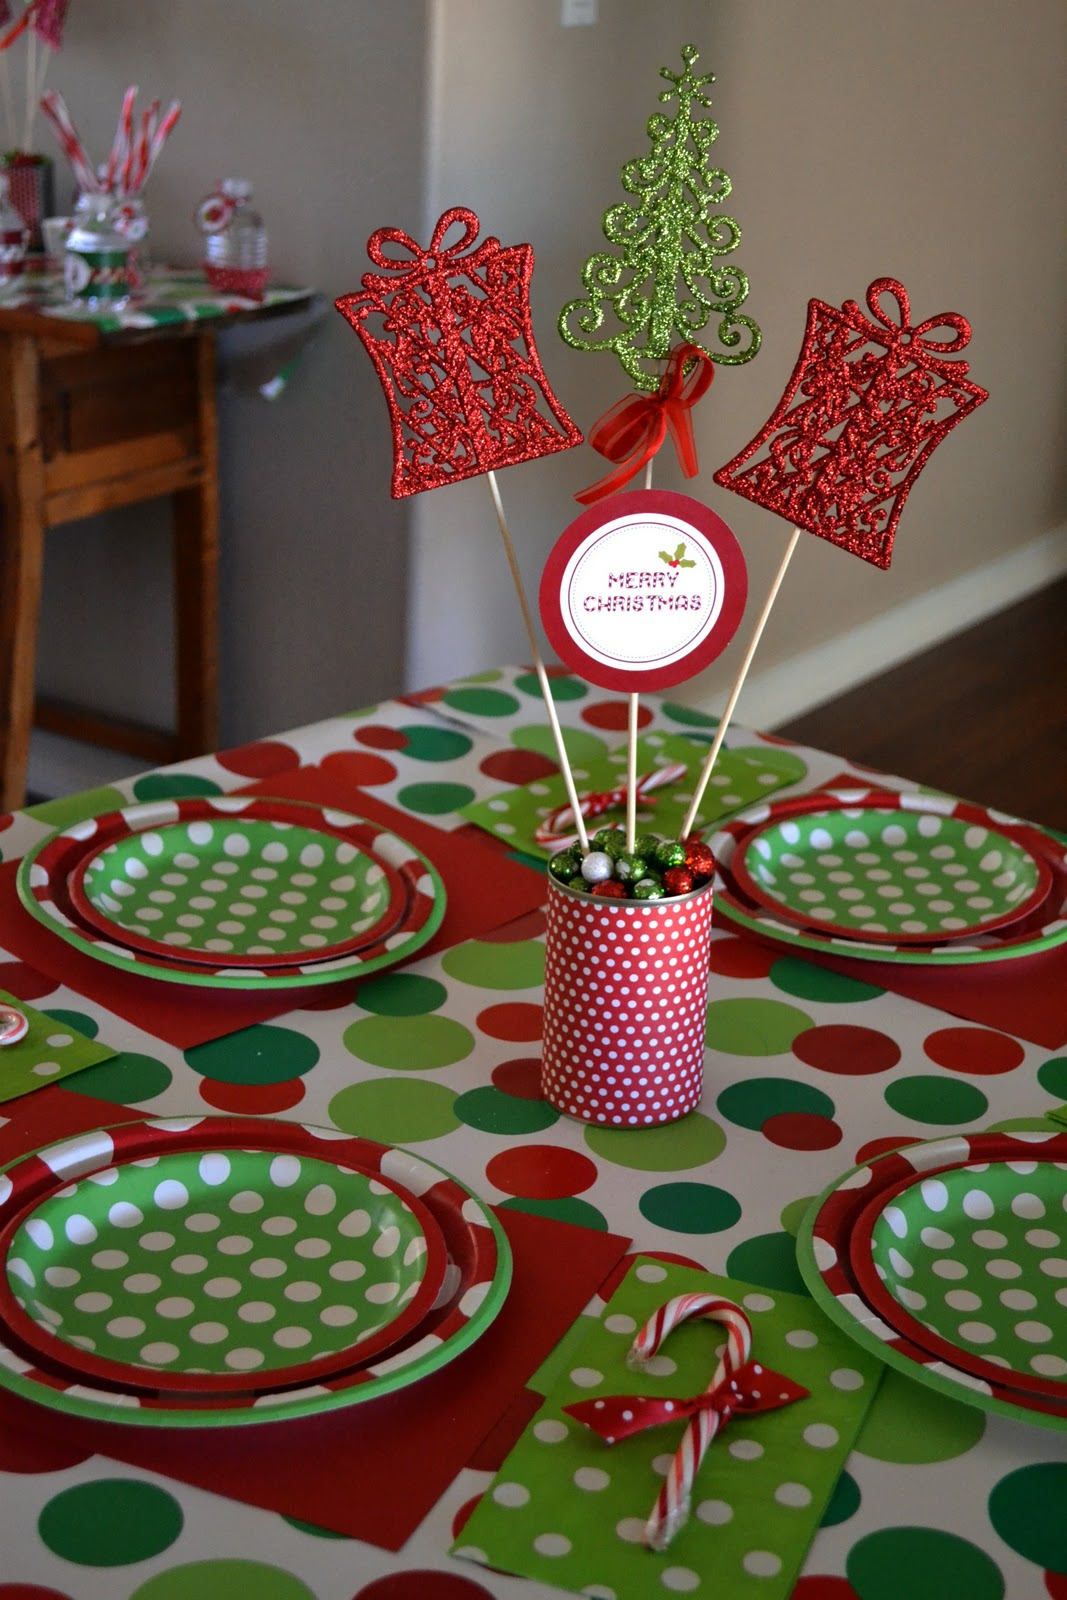 crissy 39 s crafts holly jolly holiday party. Black Bedroom Furniture Sets. Home Design Ideas